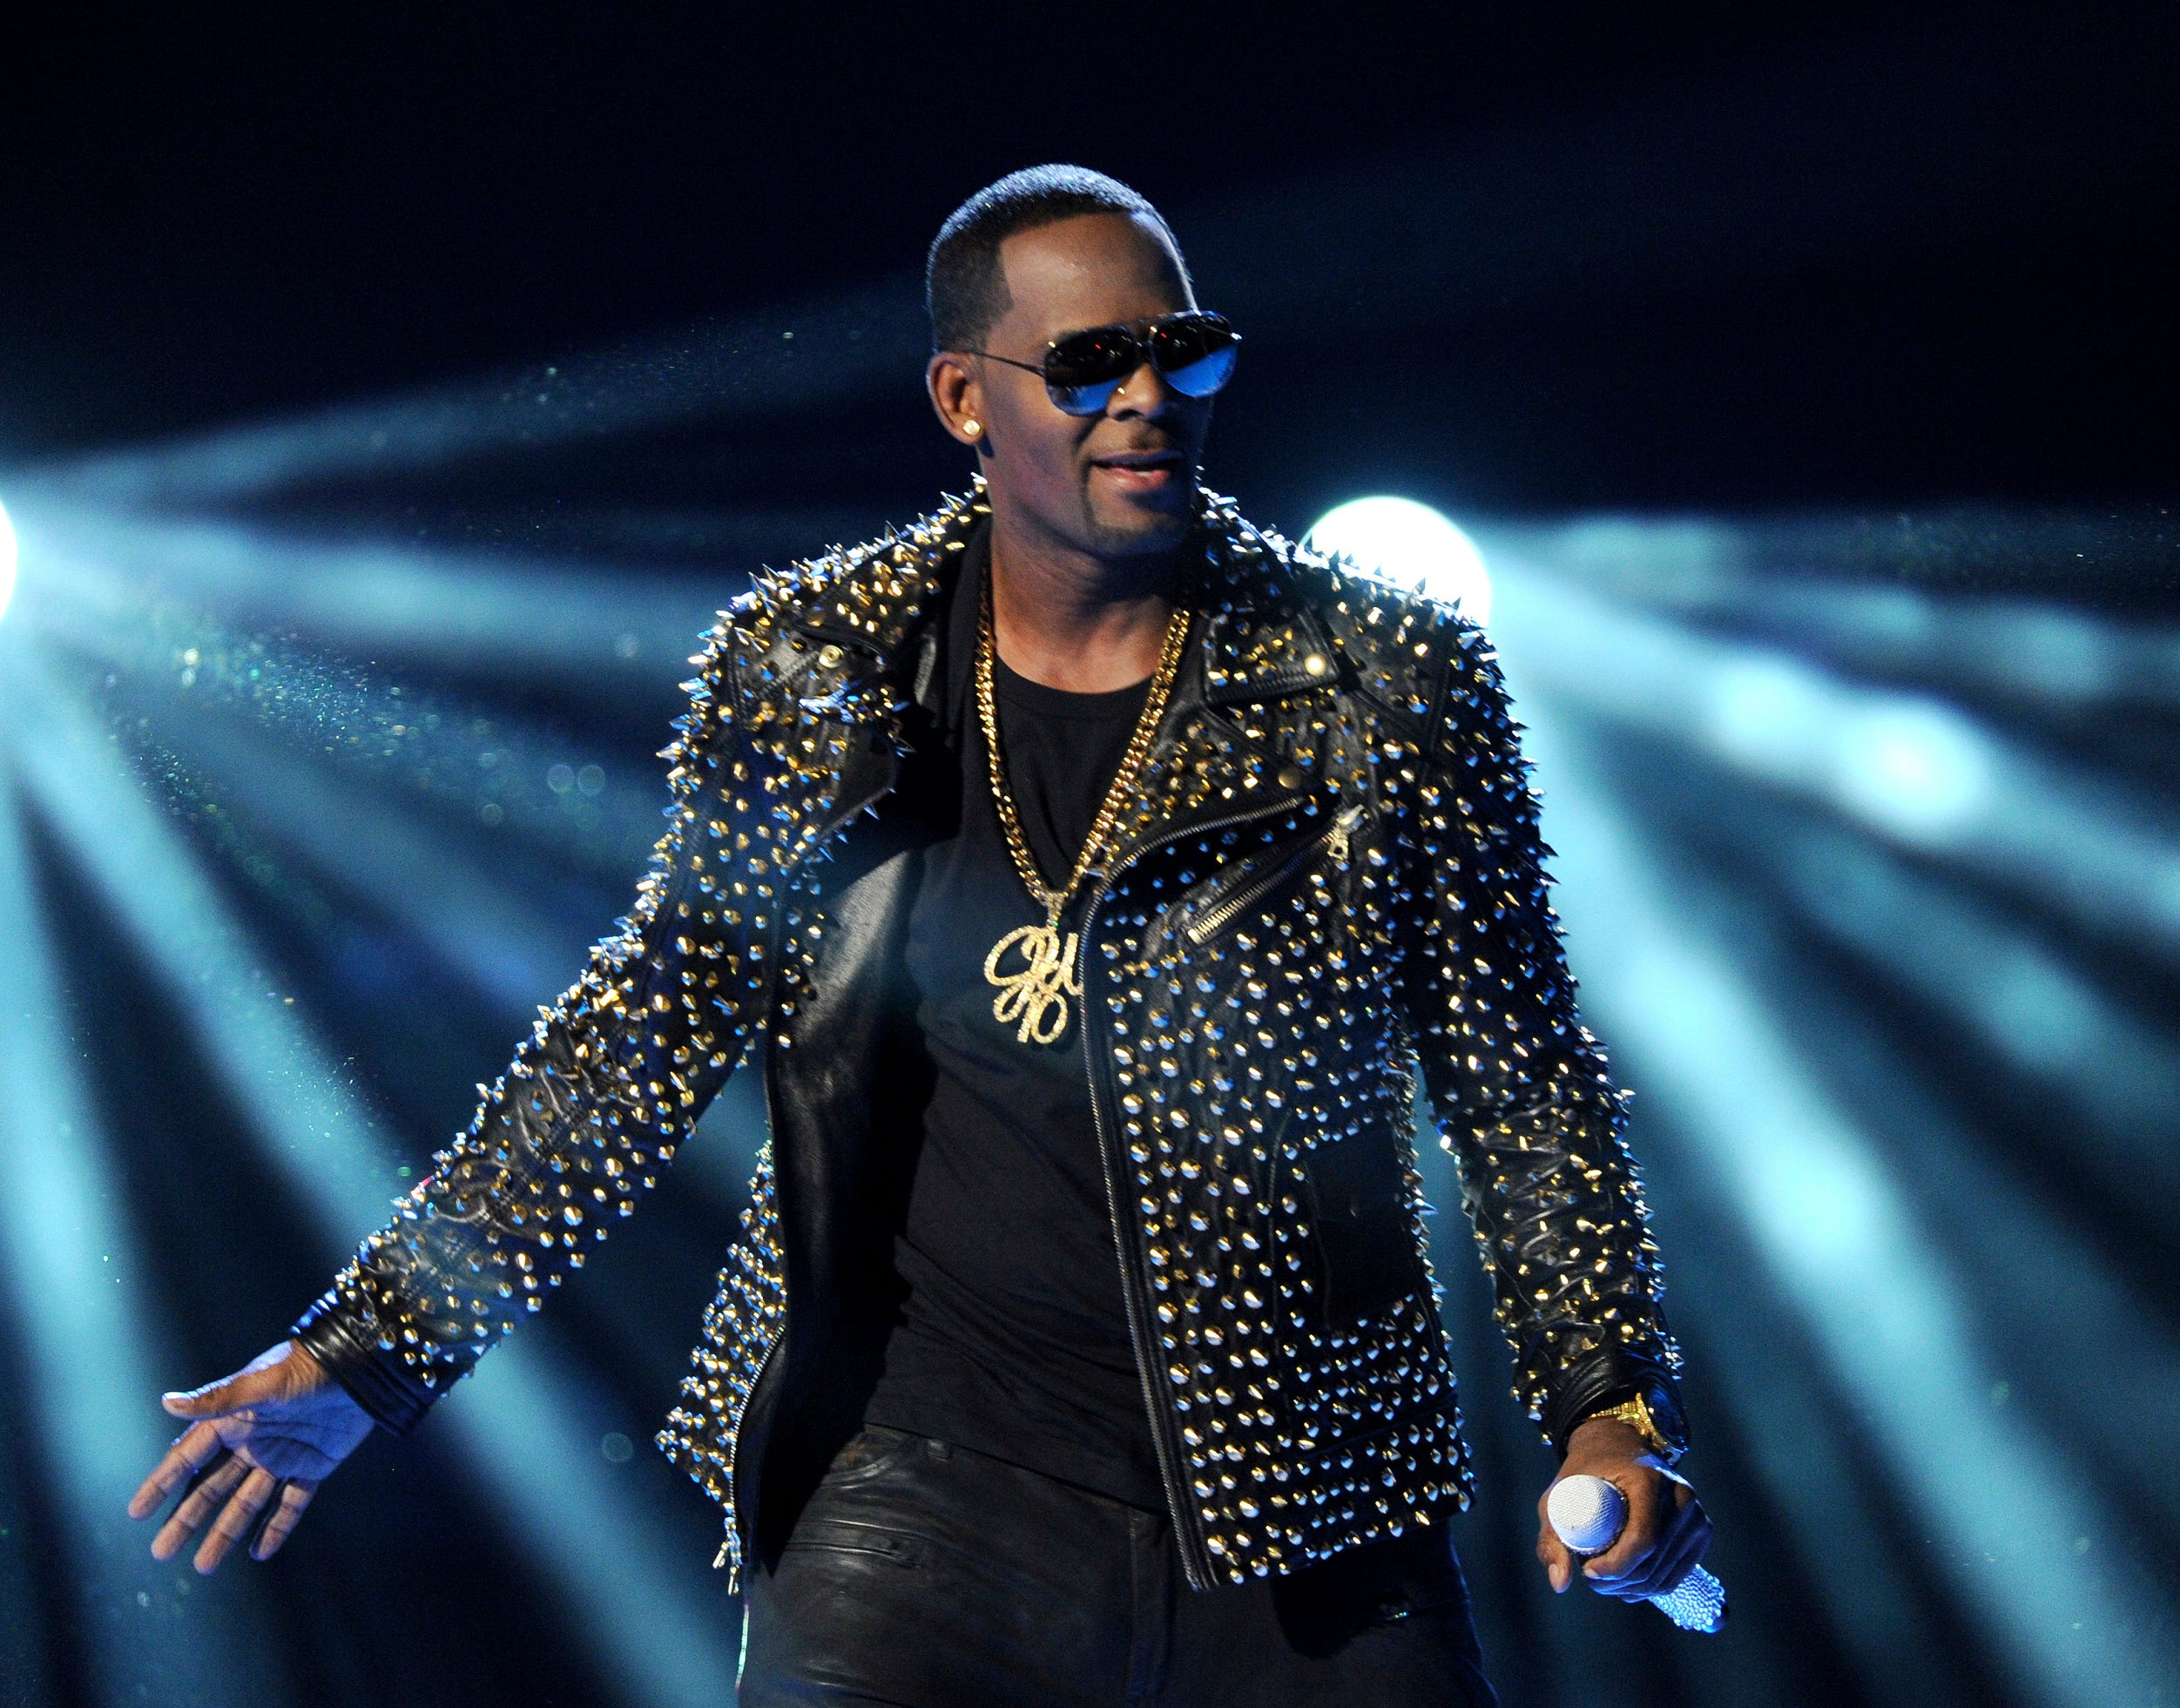 R. Kelly scandal: Gloria Allred says teen depicted on reported sex tape may be her client